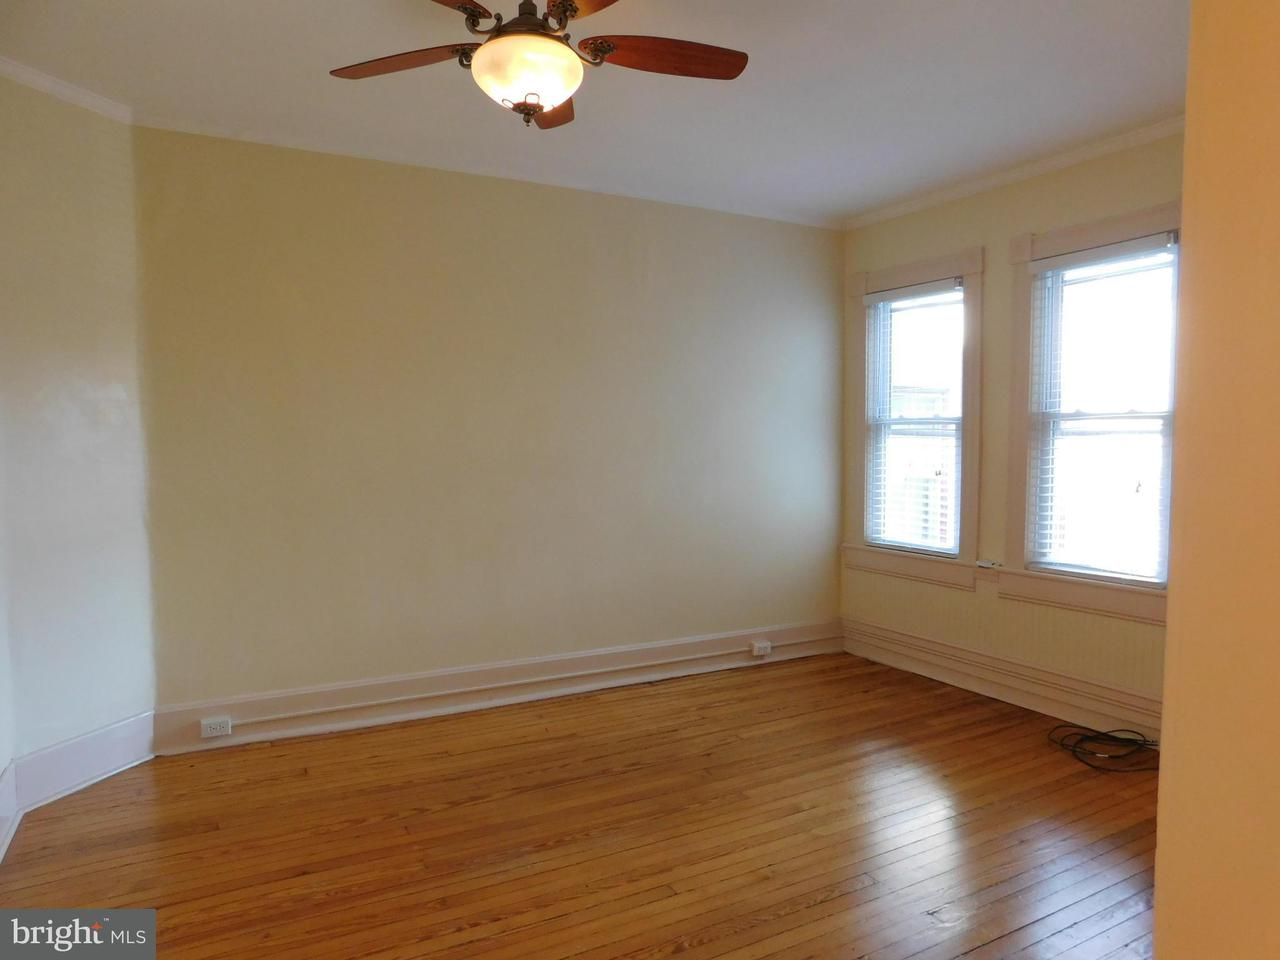 Other Residential for Rent at 69 Greene St #202 Cumberland, Maryland 21502 United States